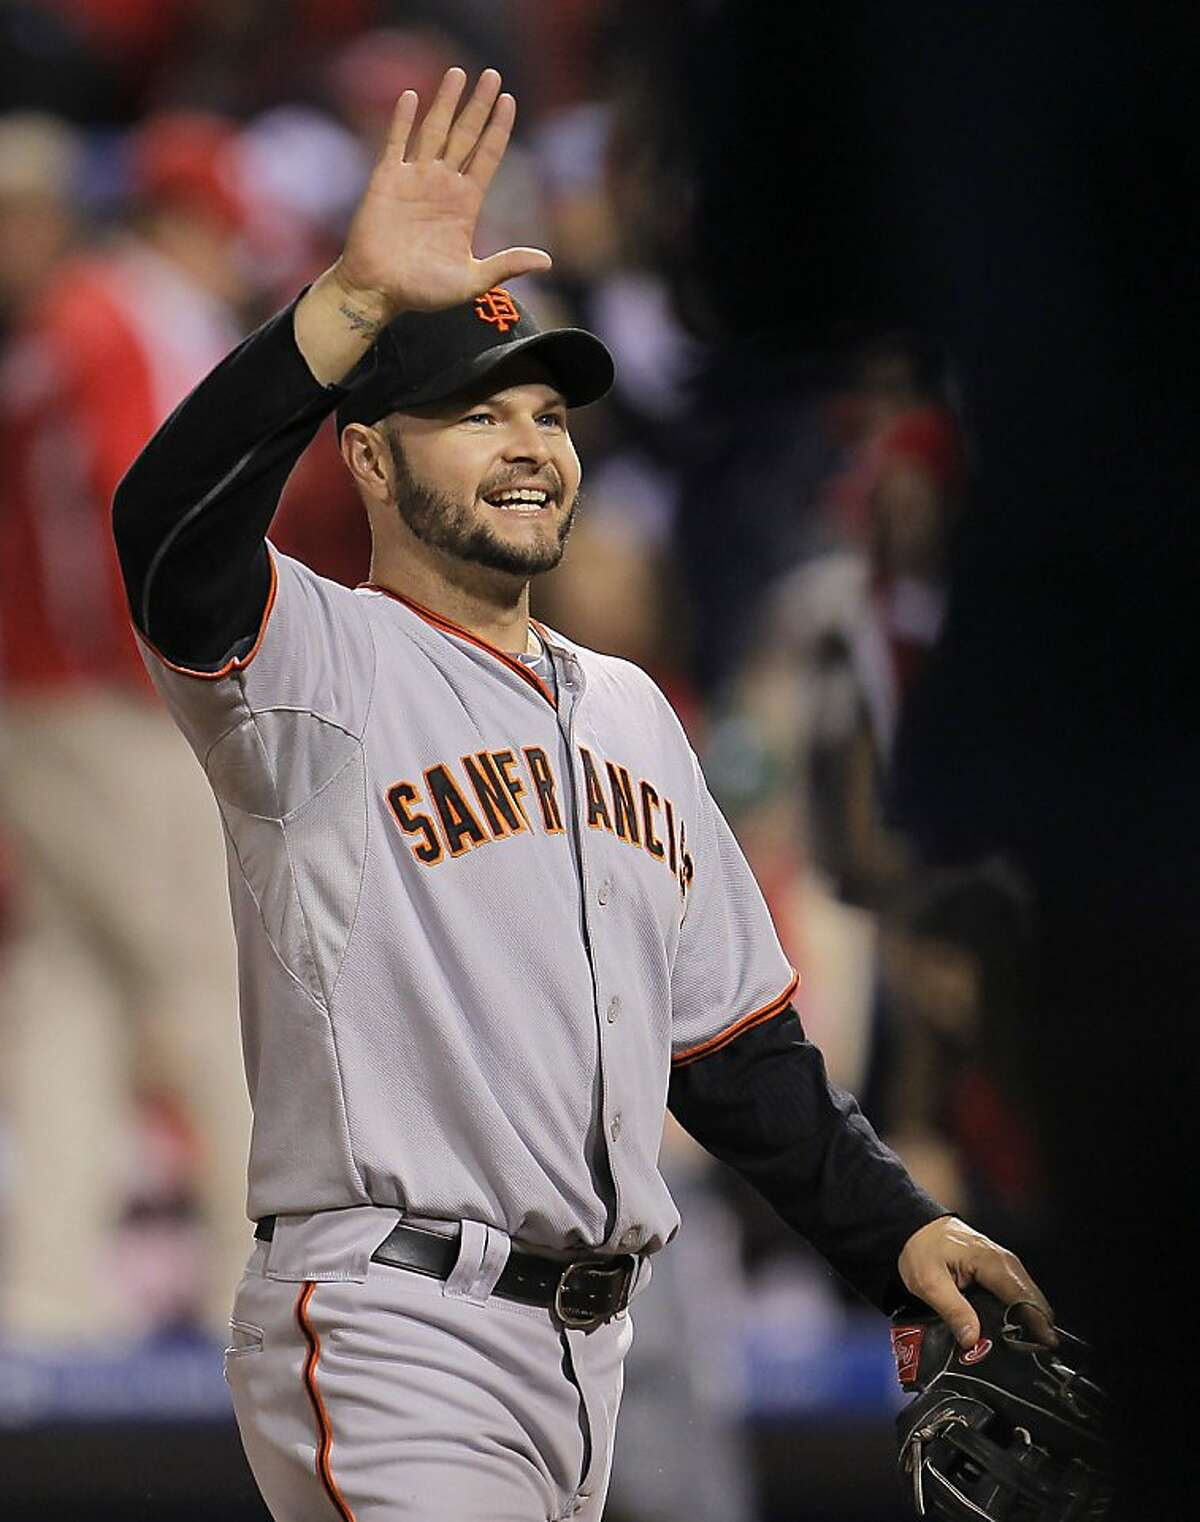 The Giants' Cody Ross celebrates their win against the Philadelphia Phillies in Game 1 of the National League Championship Series on Saturday at Citizens Bank Park in Philadelphia.